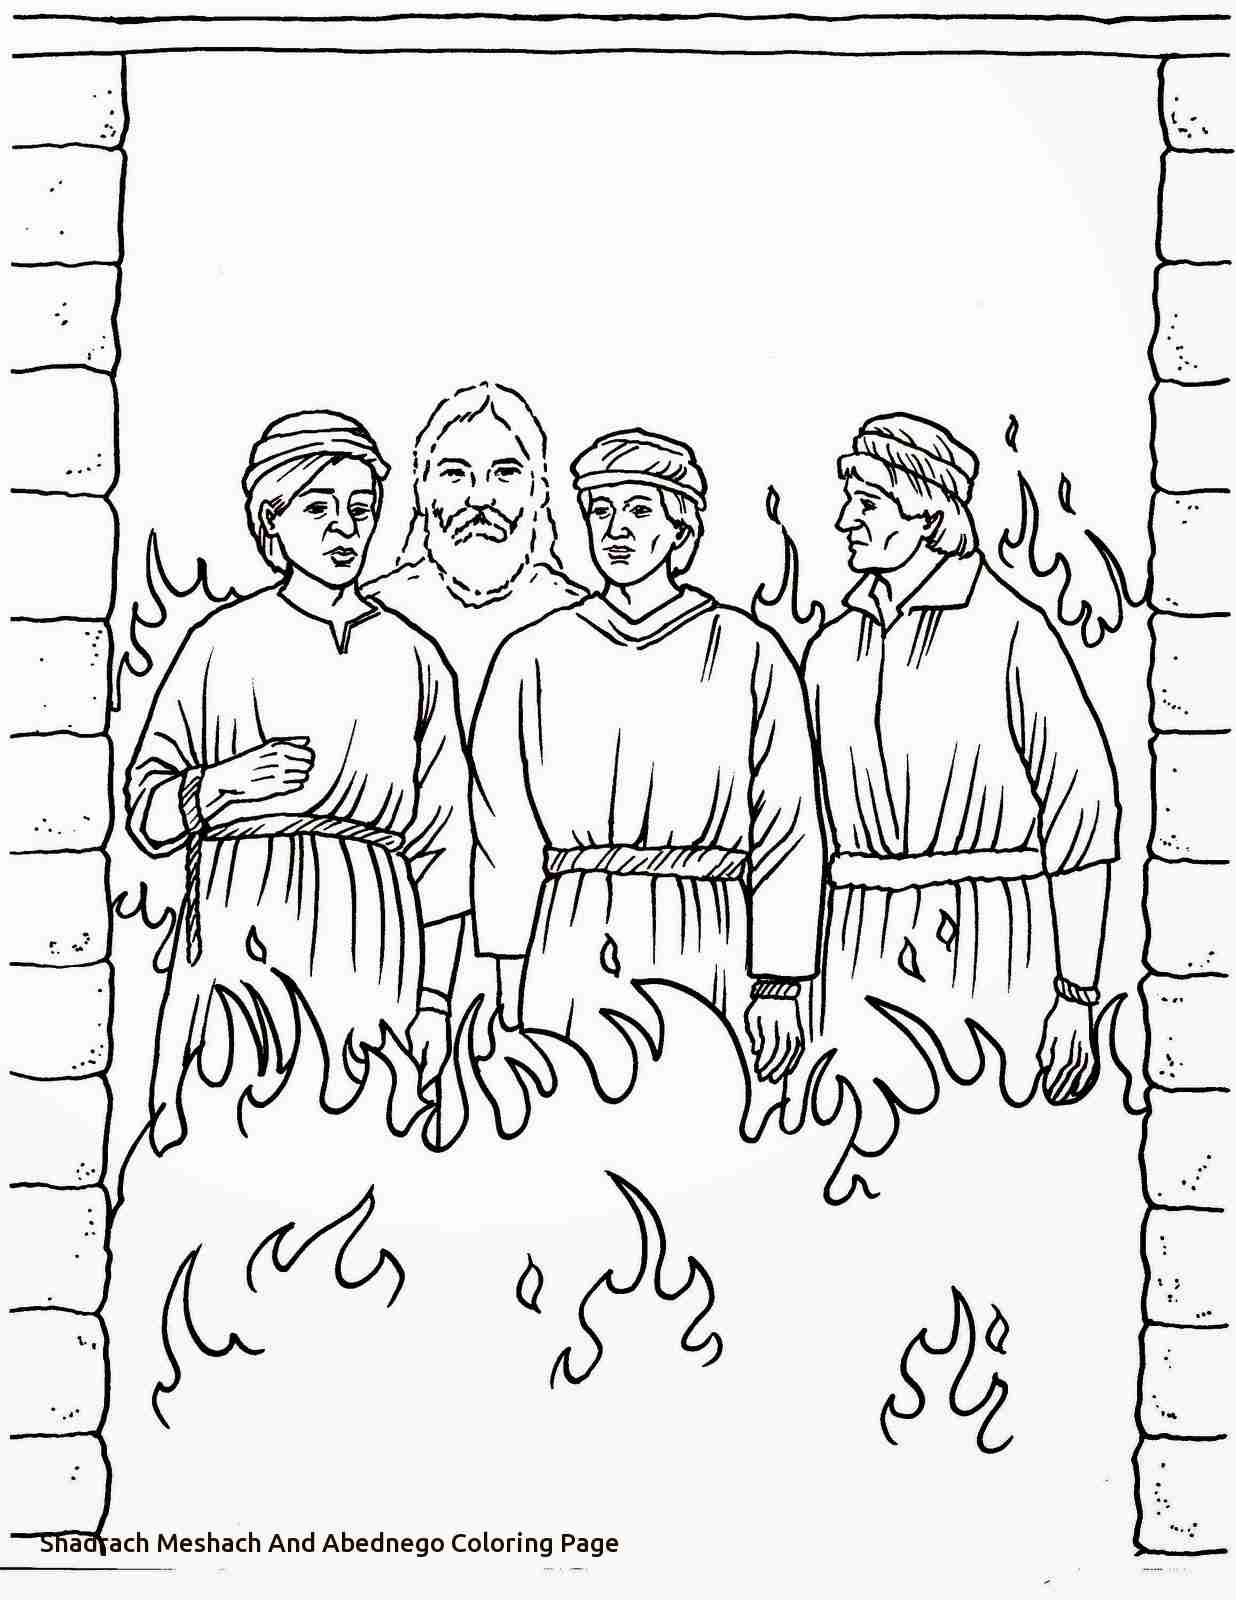 1236x1600 Shadrach Meshach And Abednego Coloring Page Az Pages Of At Olegratiy